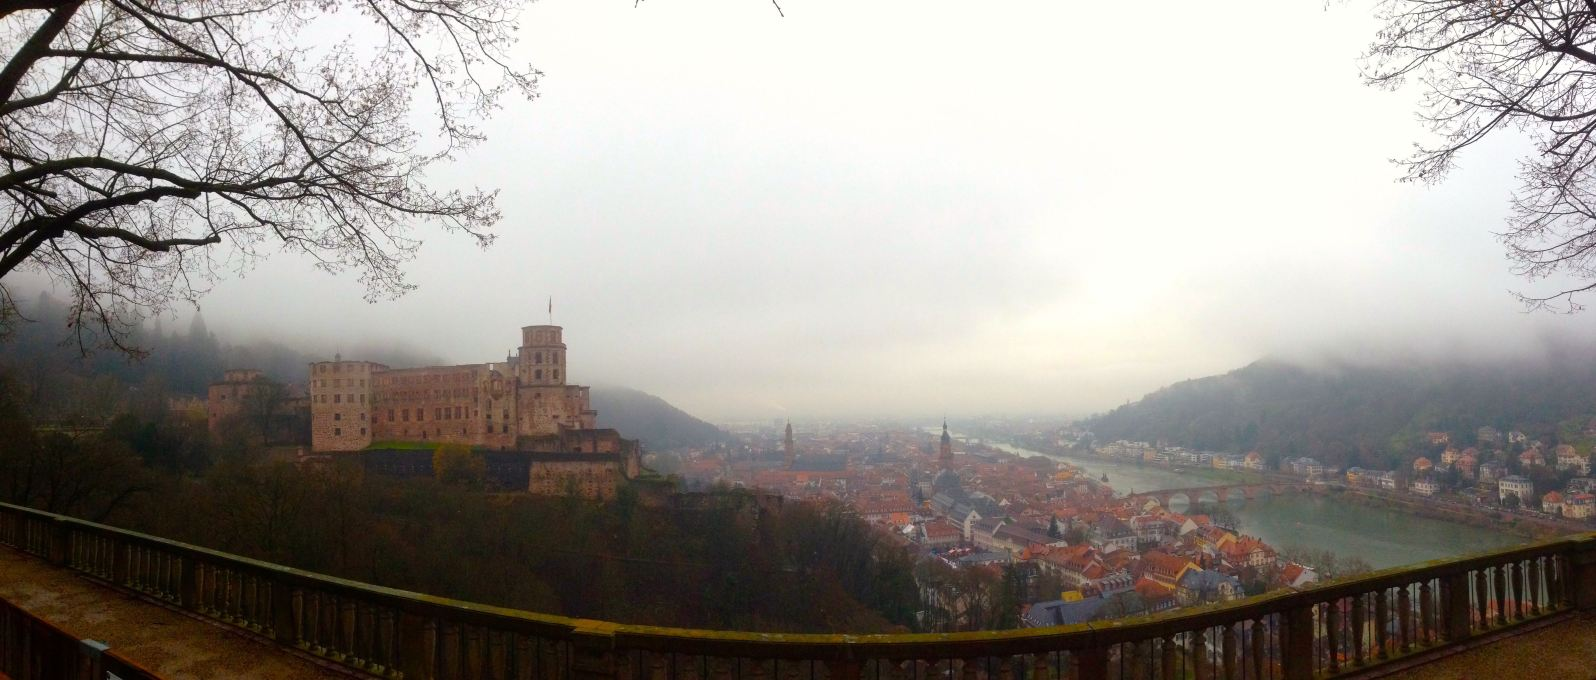 Panaroma Picture of the Castle and town below